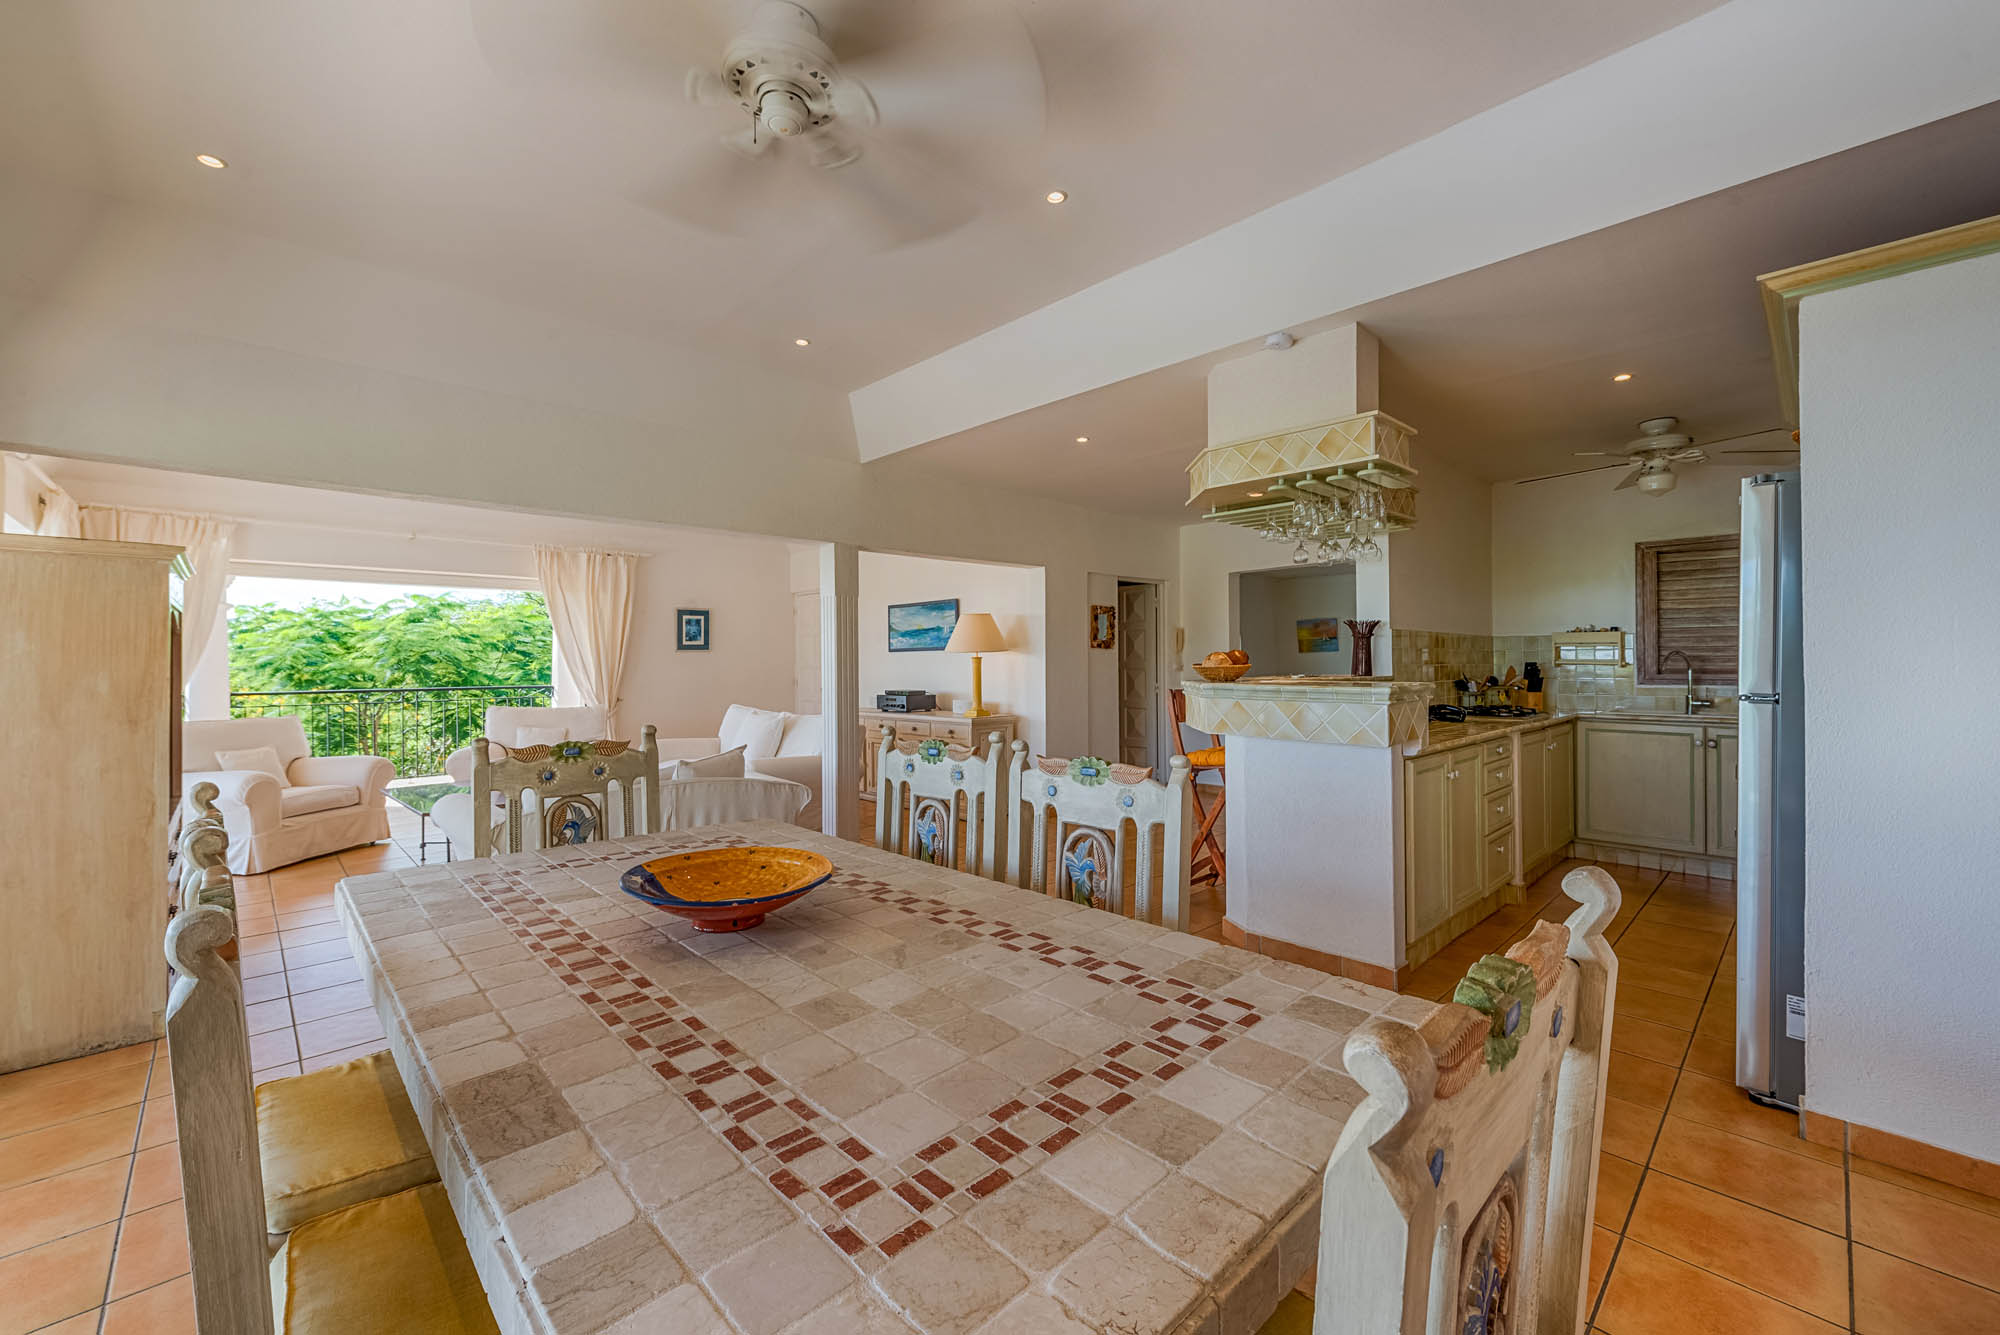 The large dining table of Little Provence villa rental, Baie Longue, Terres-Basses, Saint Martin, Caribbean is cooled by a ceiling fan.